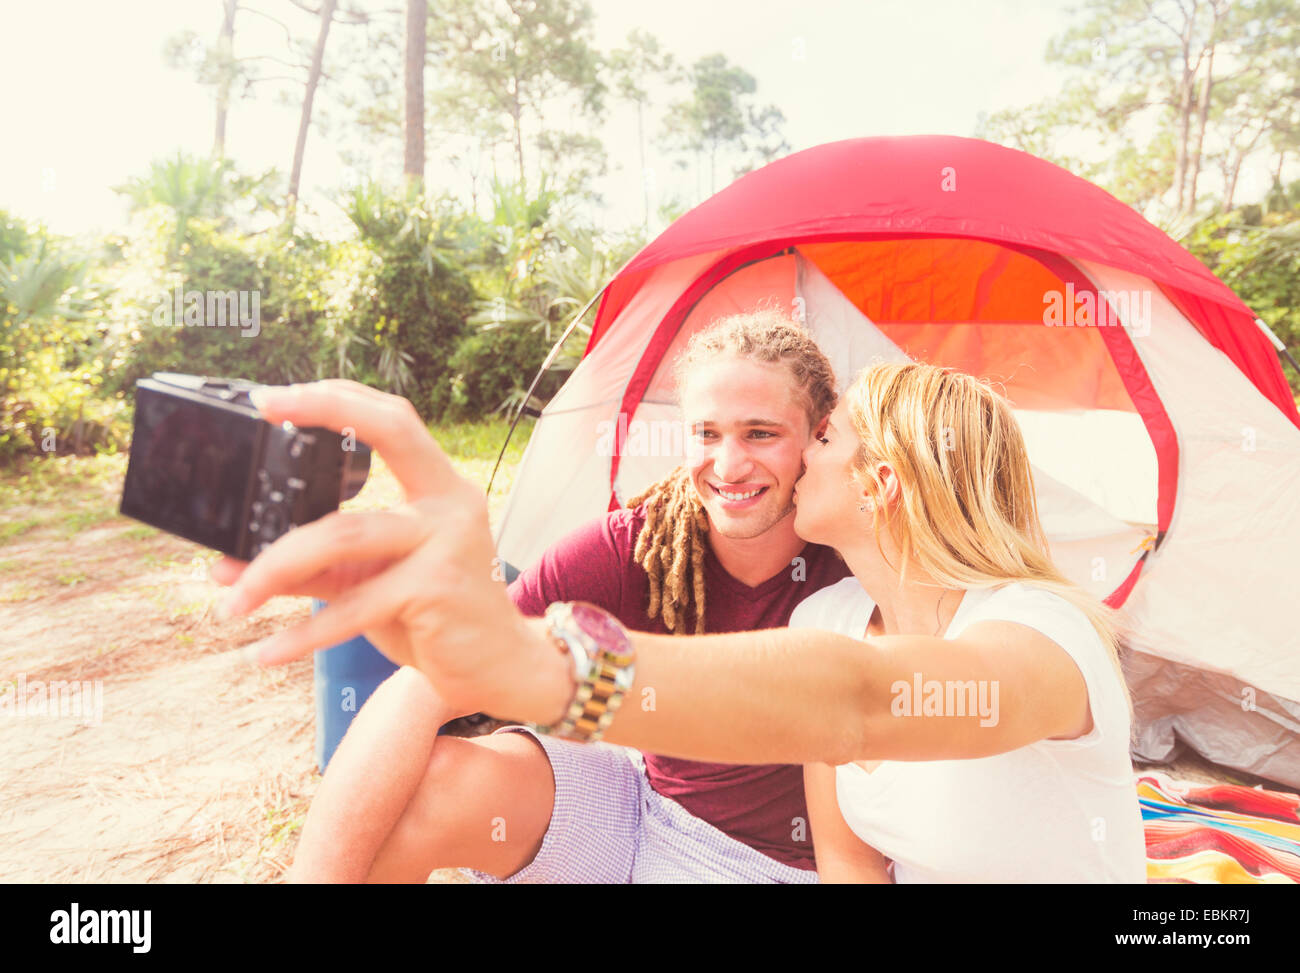 USA, Florida, Tequesta, Couple taking selfie Stock Photo